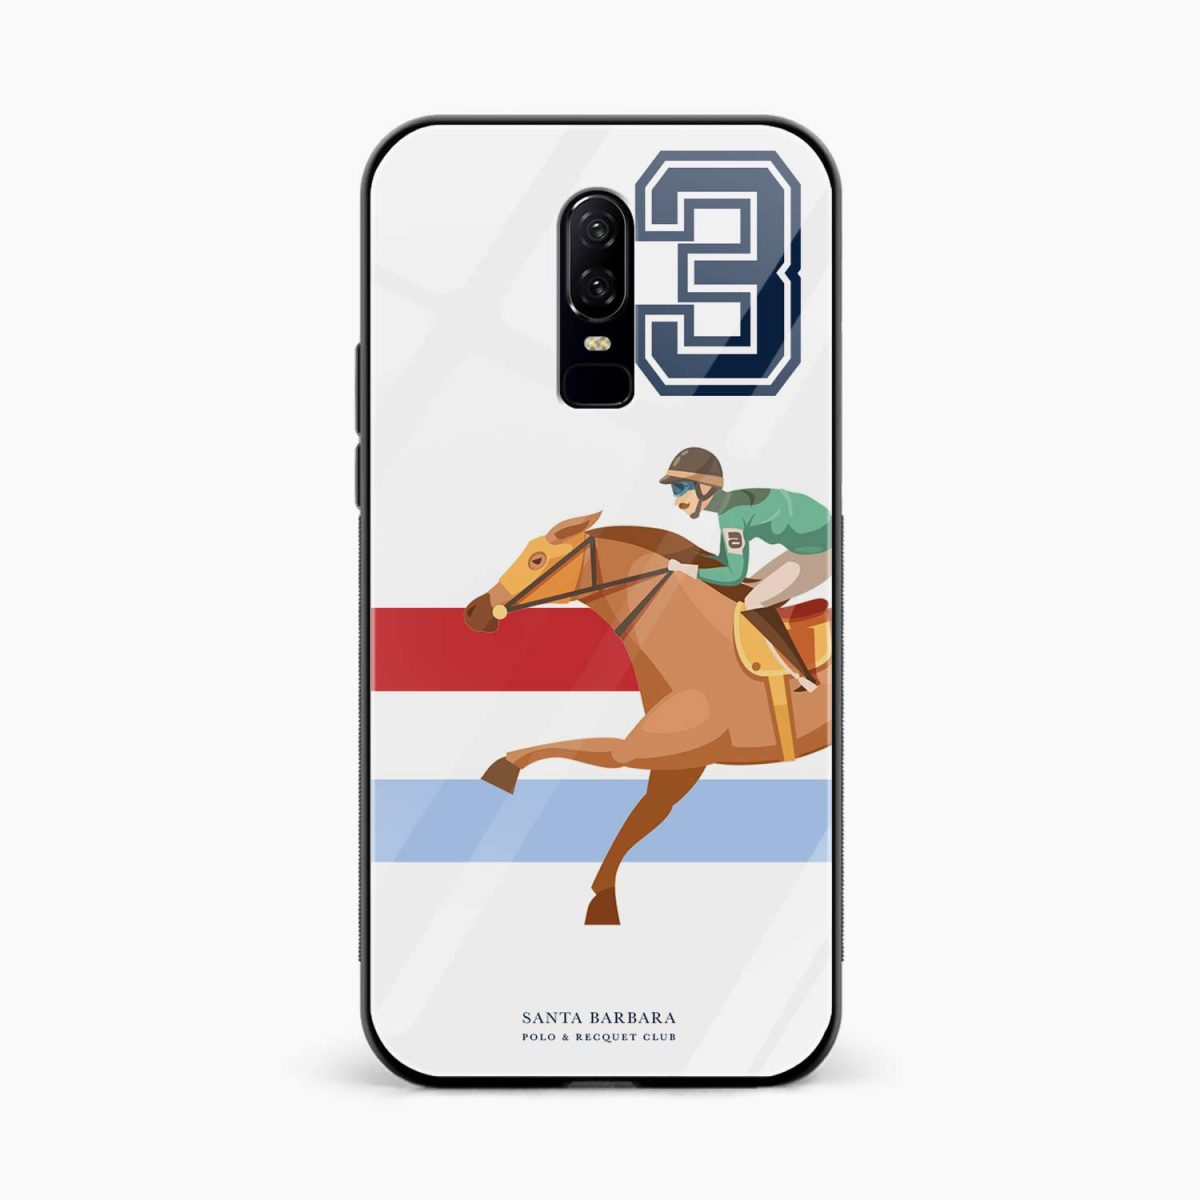 3D Santa Barbara front view oneplus 6 back cover